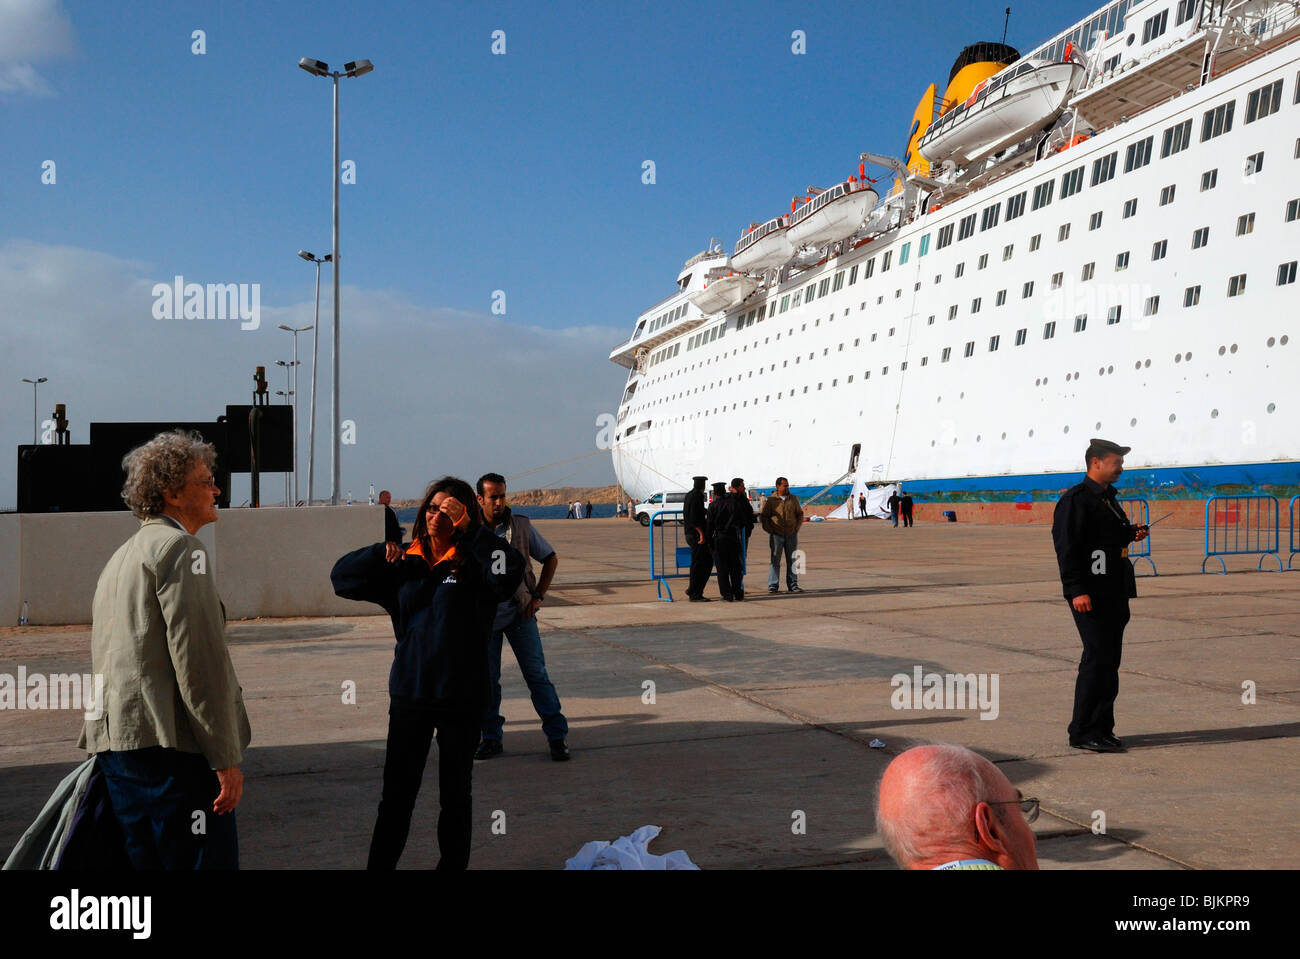 Listing COSTA EUROPA cruise ship after crashing into the quay, passengers and staff of Costa Cruises, security staff, Stock Photo